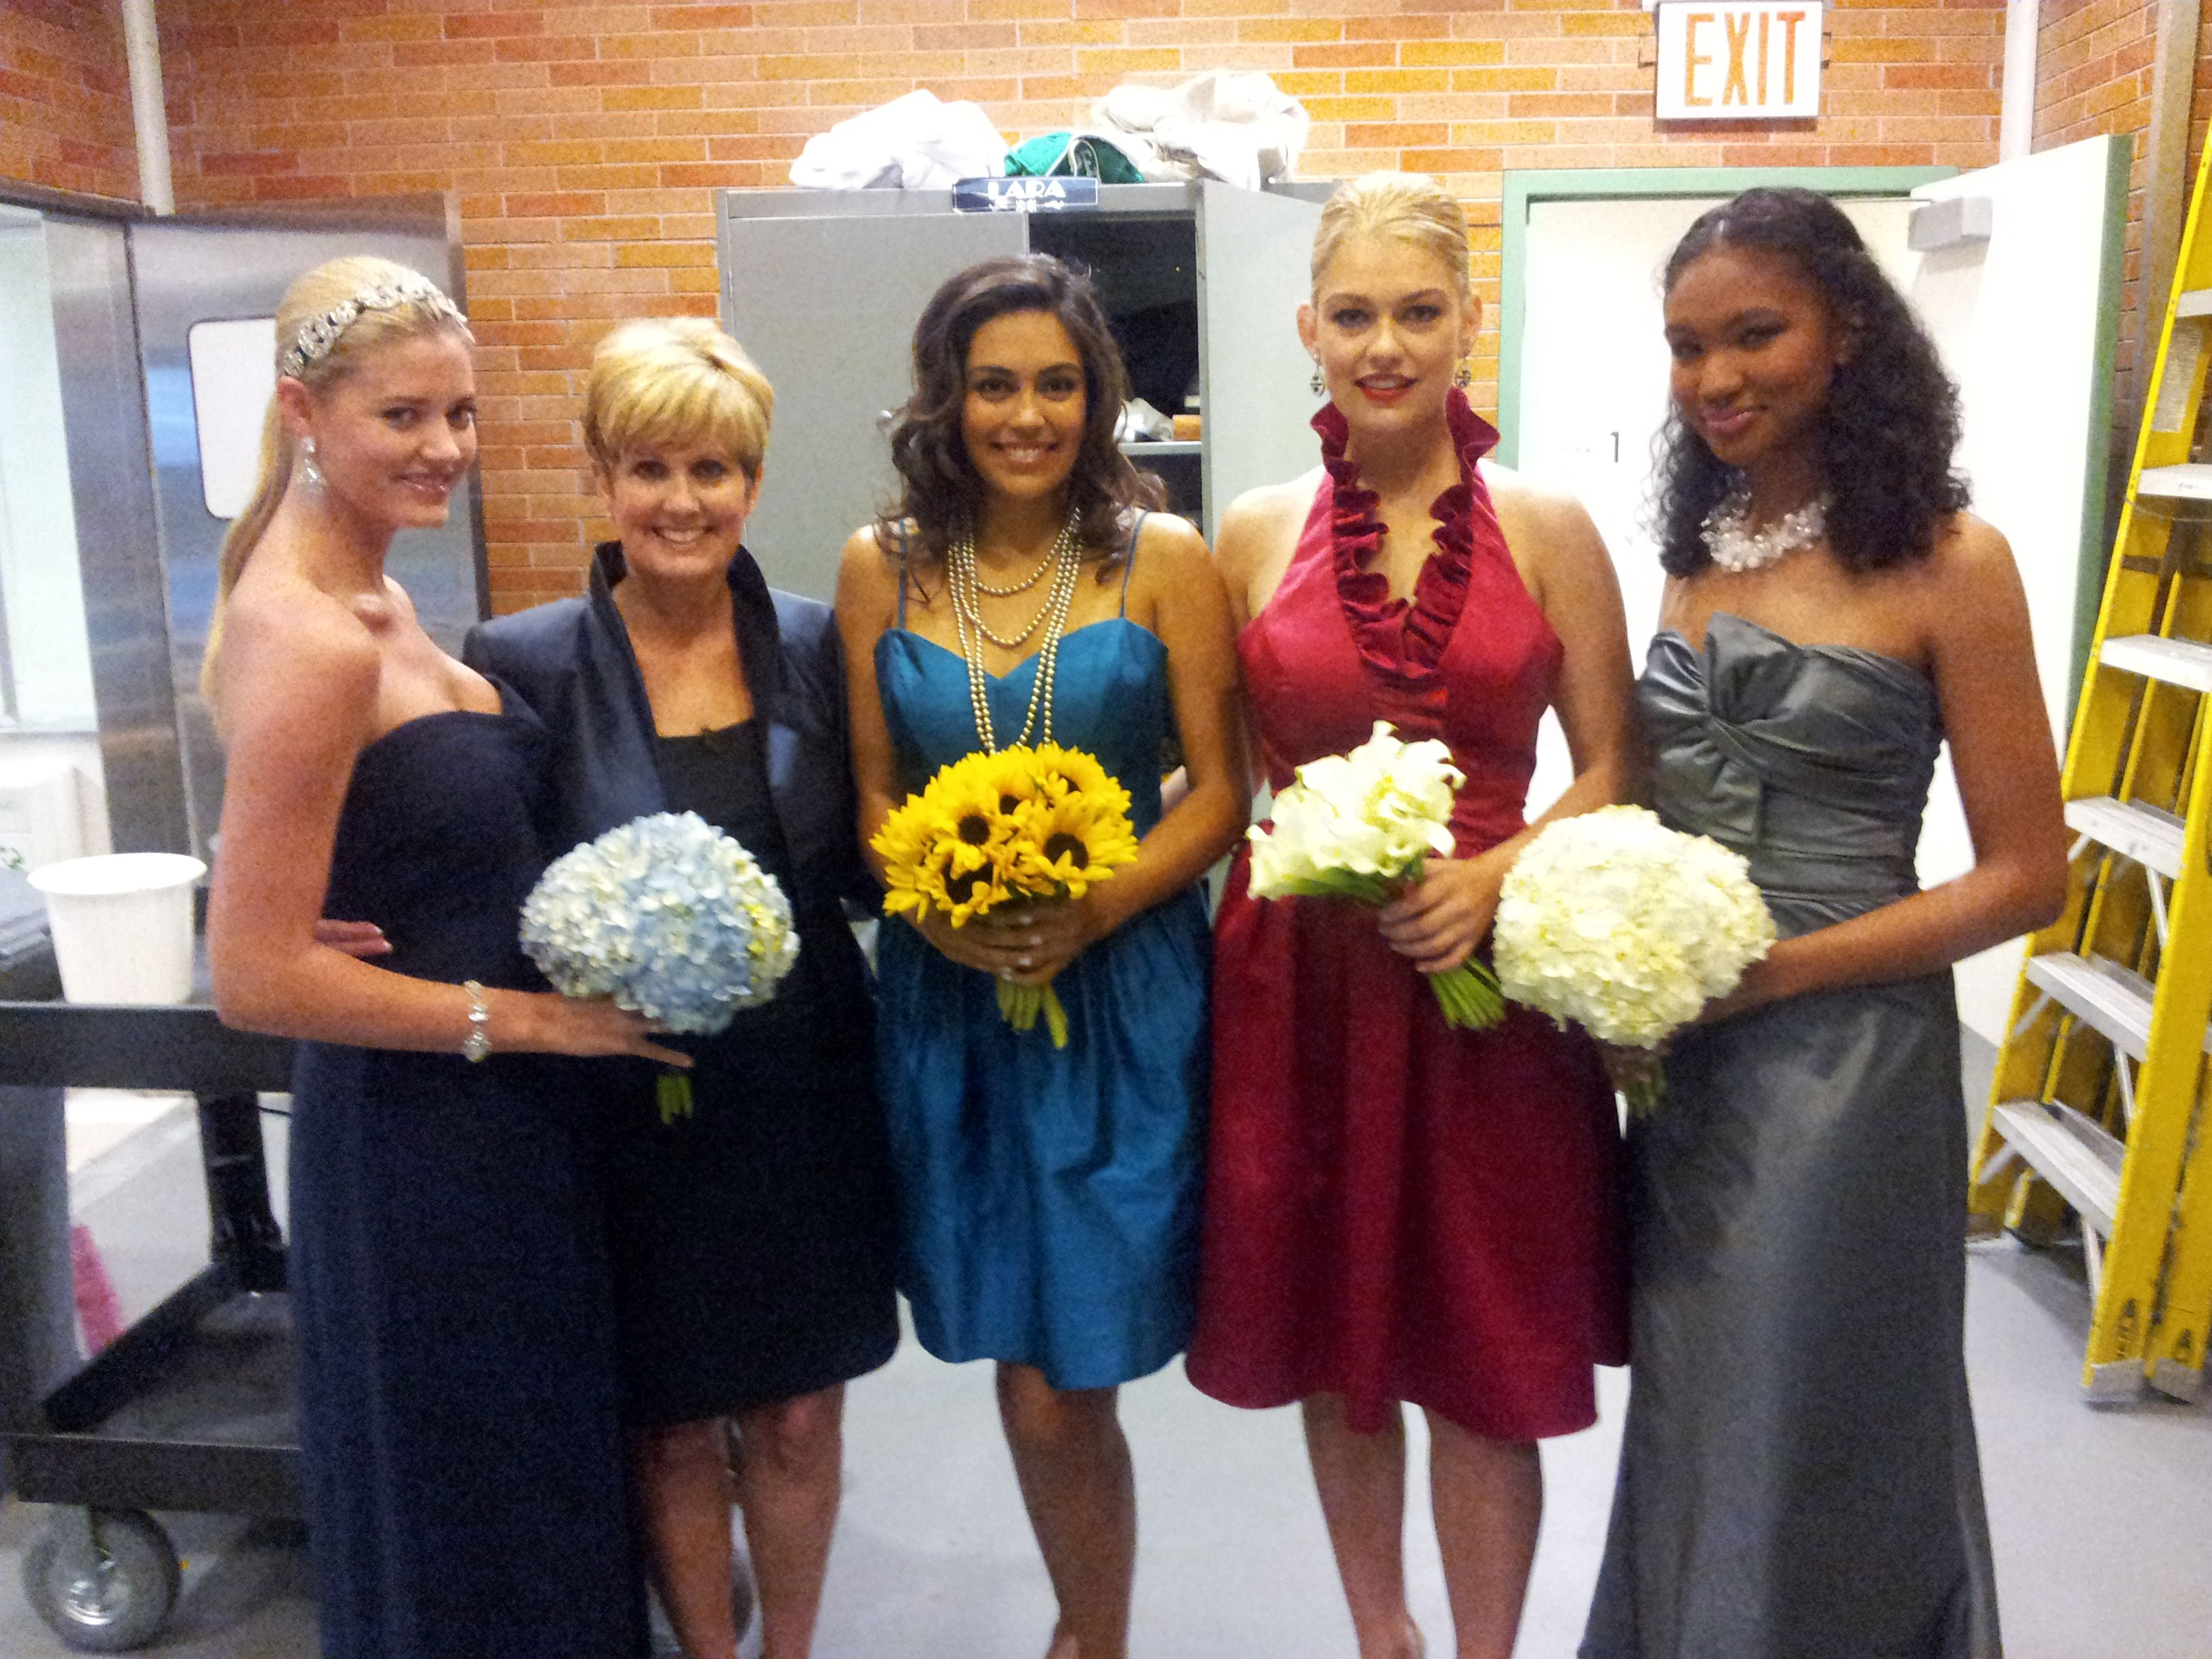 Say yes to the dress bridesmaids consultants after hours say yes to the dress bridesmaids consultants after hours syttd bridesmaids behind the scenes pinterest weddings ombrellifo Choice Image